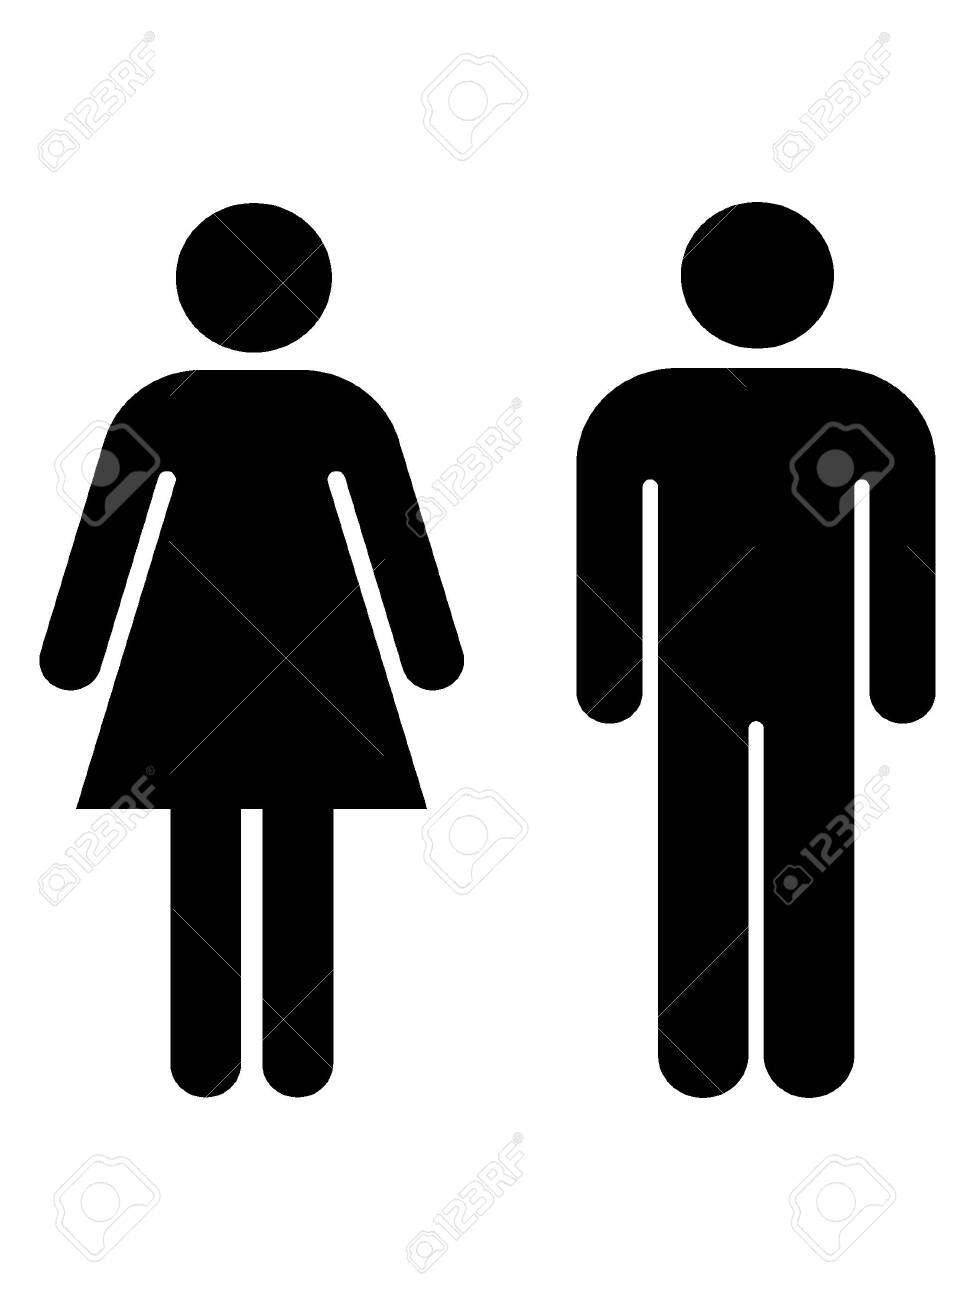 Black and White Silhouette of a Toilet Symbol - 135272507